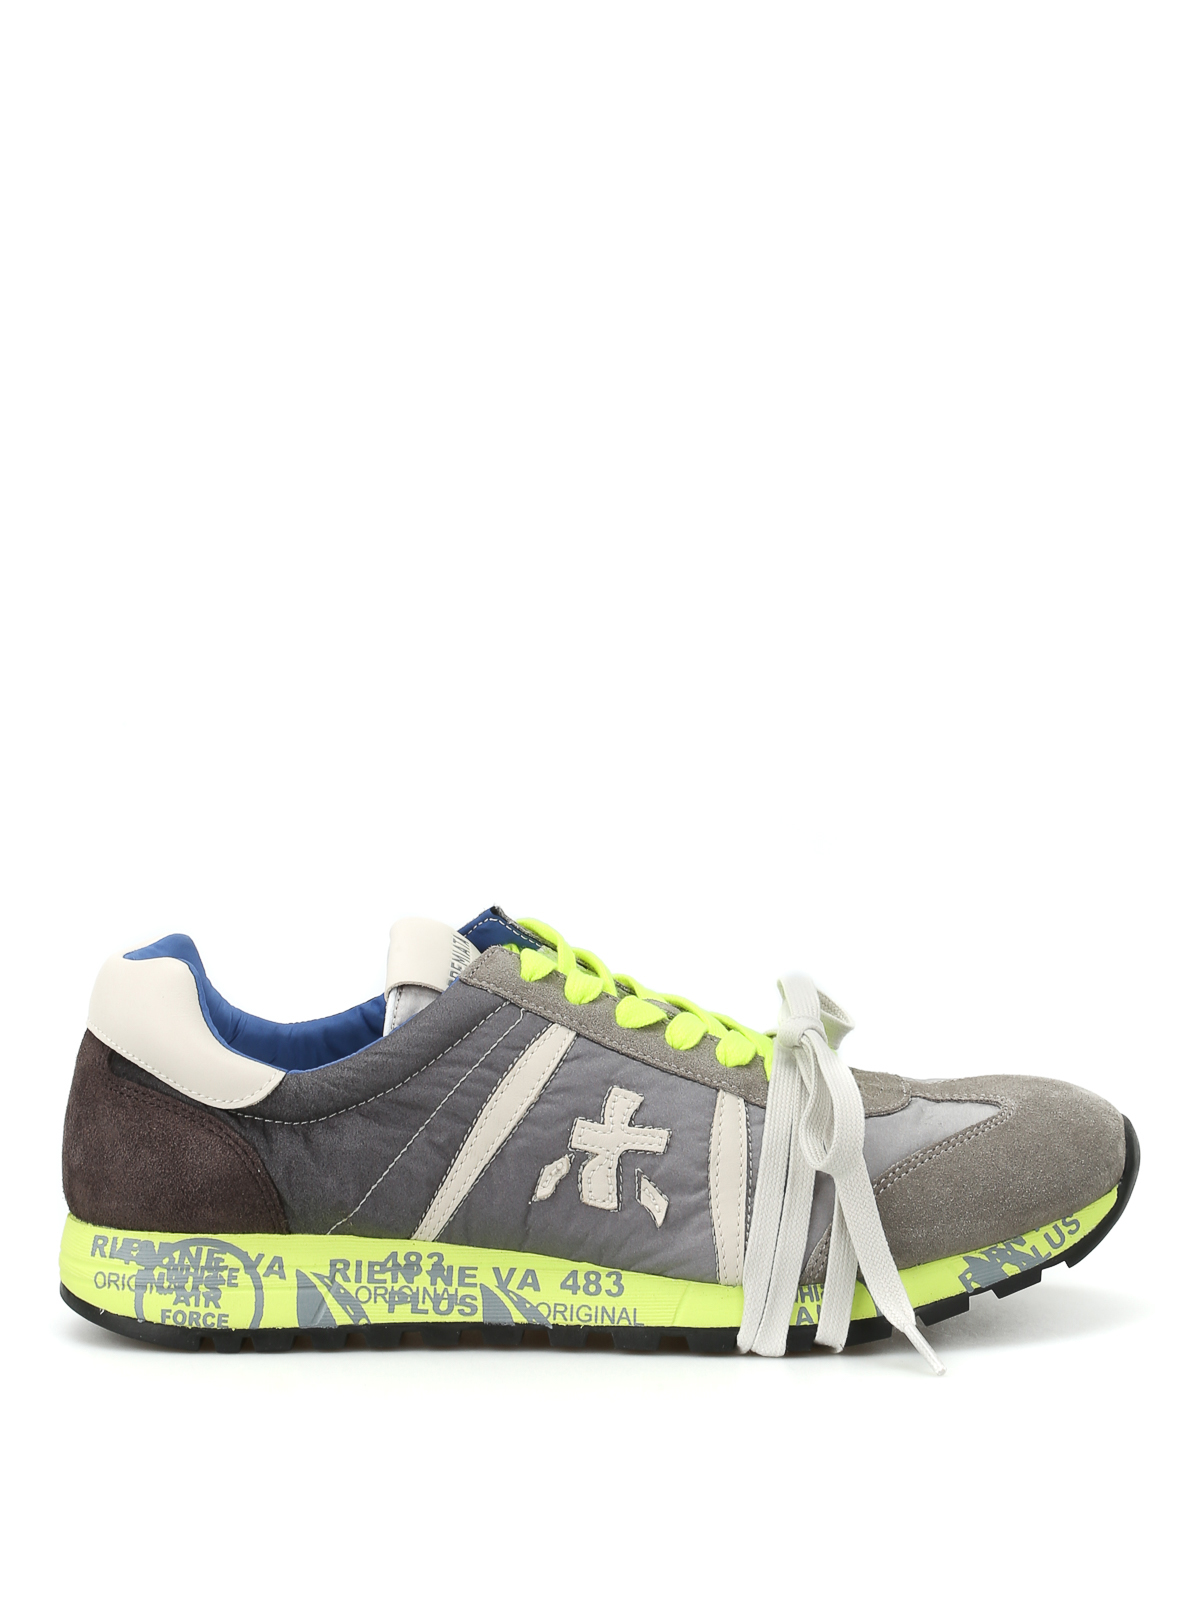 1313e Trainers Top Sneakers Low Premiata Lucy HqXS1